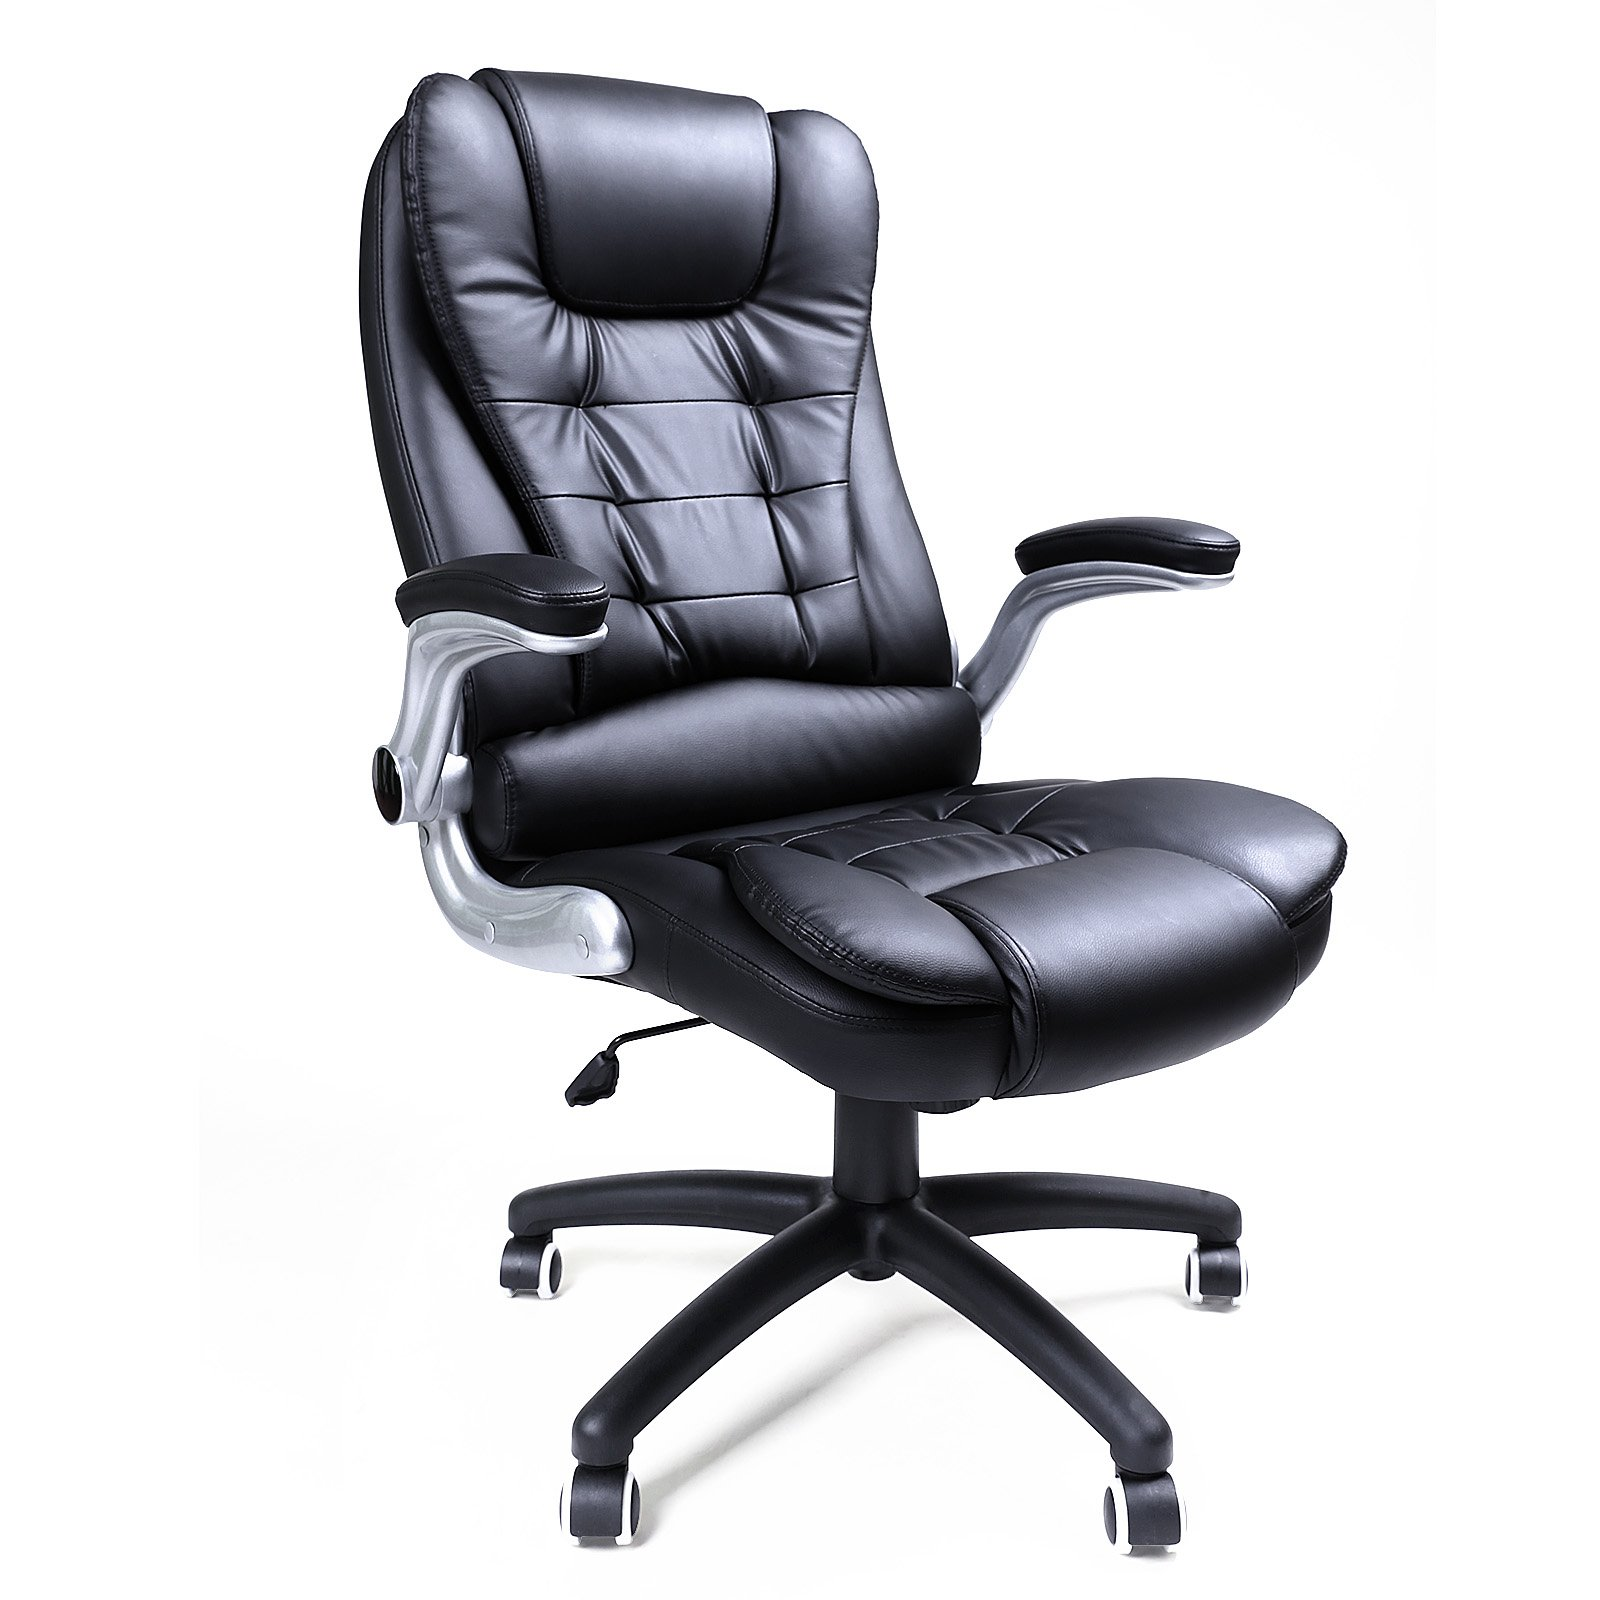 SONGMICS Big & Tall Office Chair with High Back Thick Seat and Adjustable Armrest Tilt Function Executive Swivel Computer Chair PU Black UOBG51B